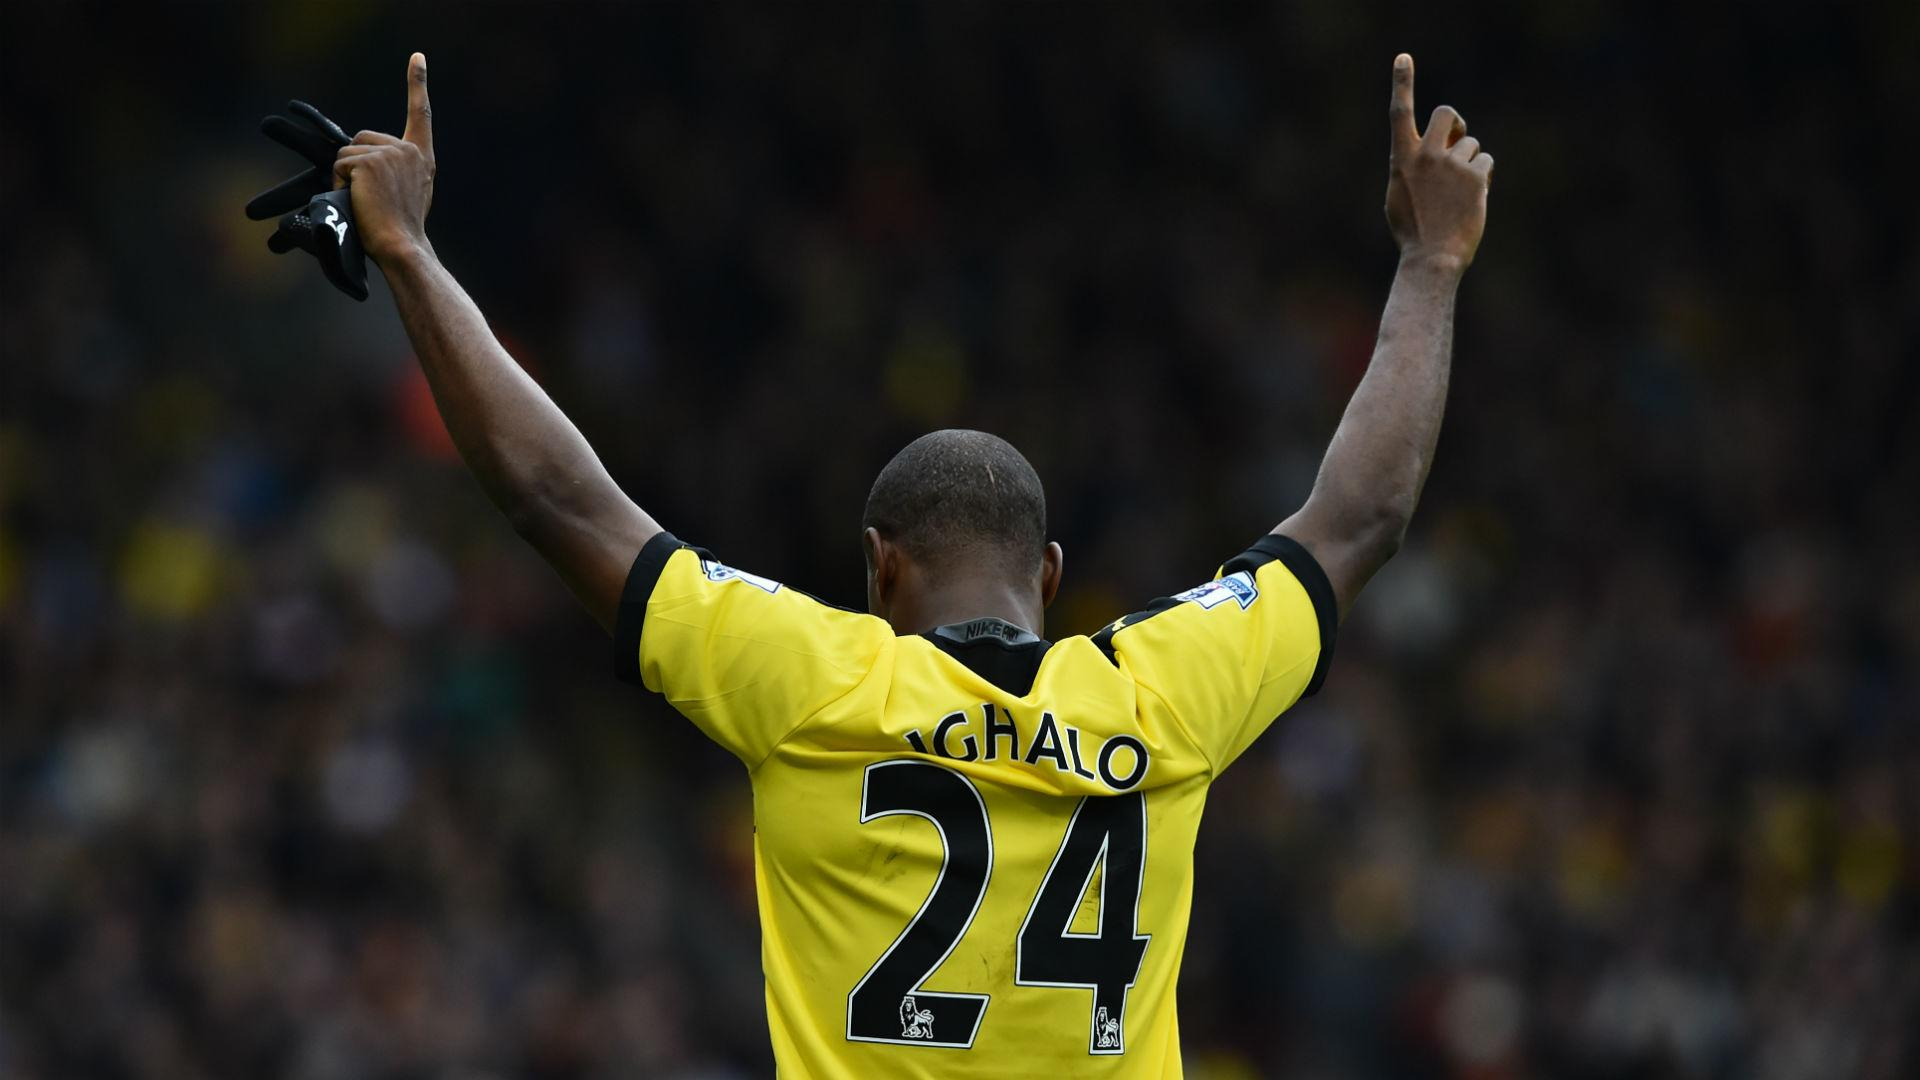 Traveling for international games can be tiring – Ighalo